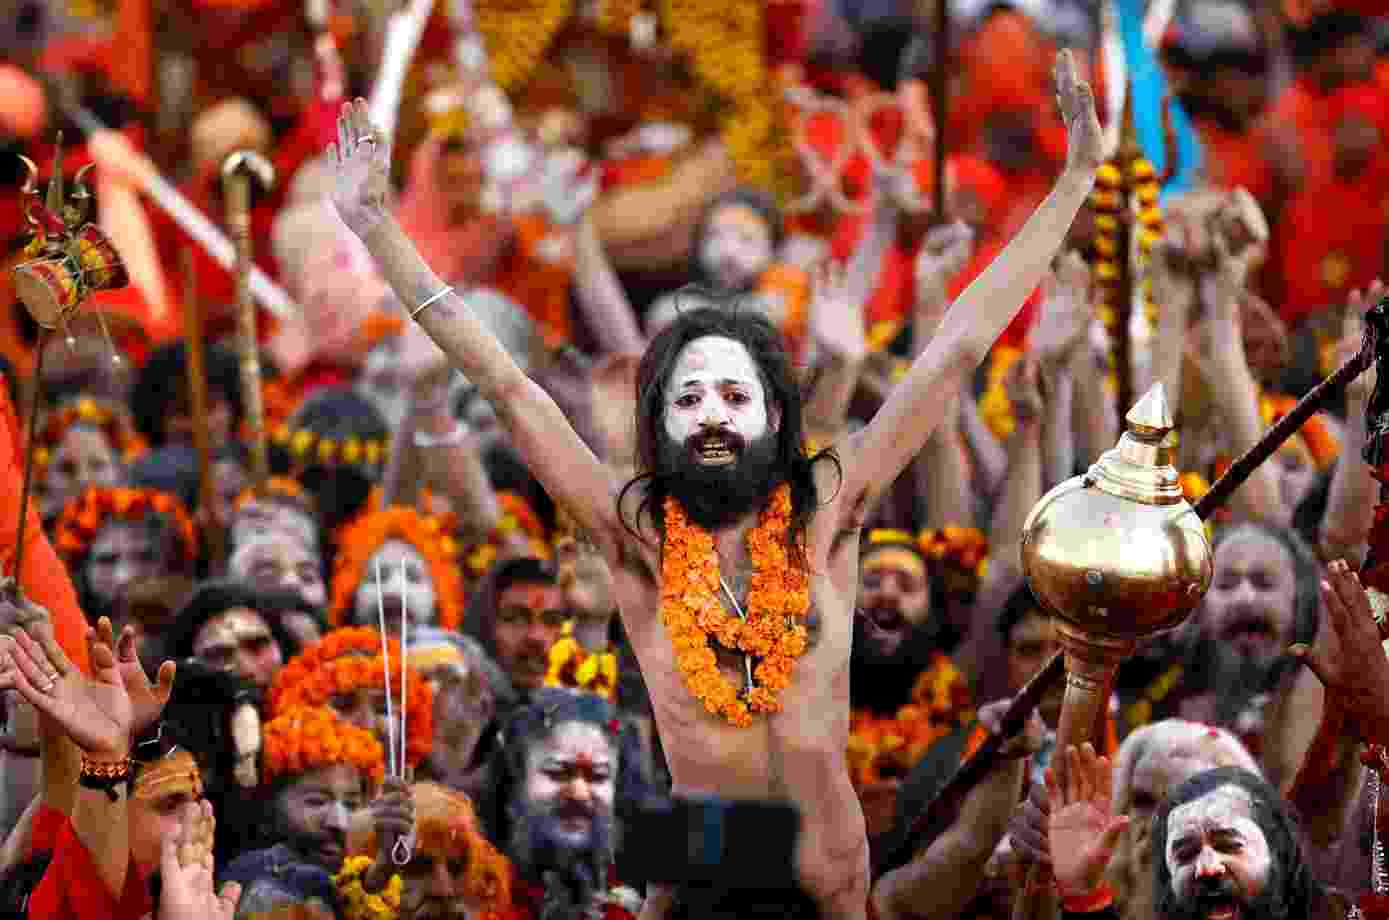 Kumbh Mela in the list of intangible cultural heritage of humanity, know its mysterious facts